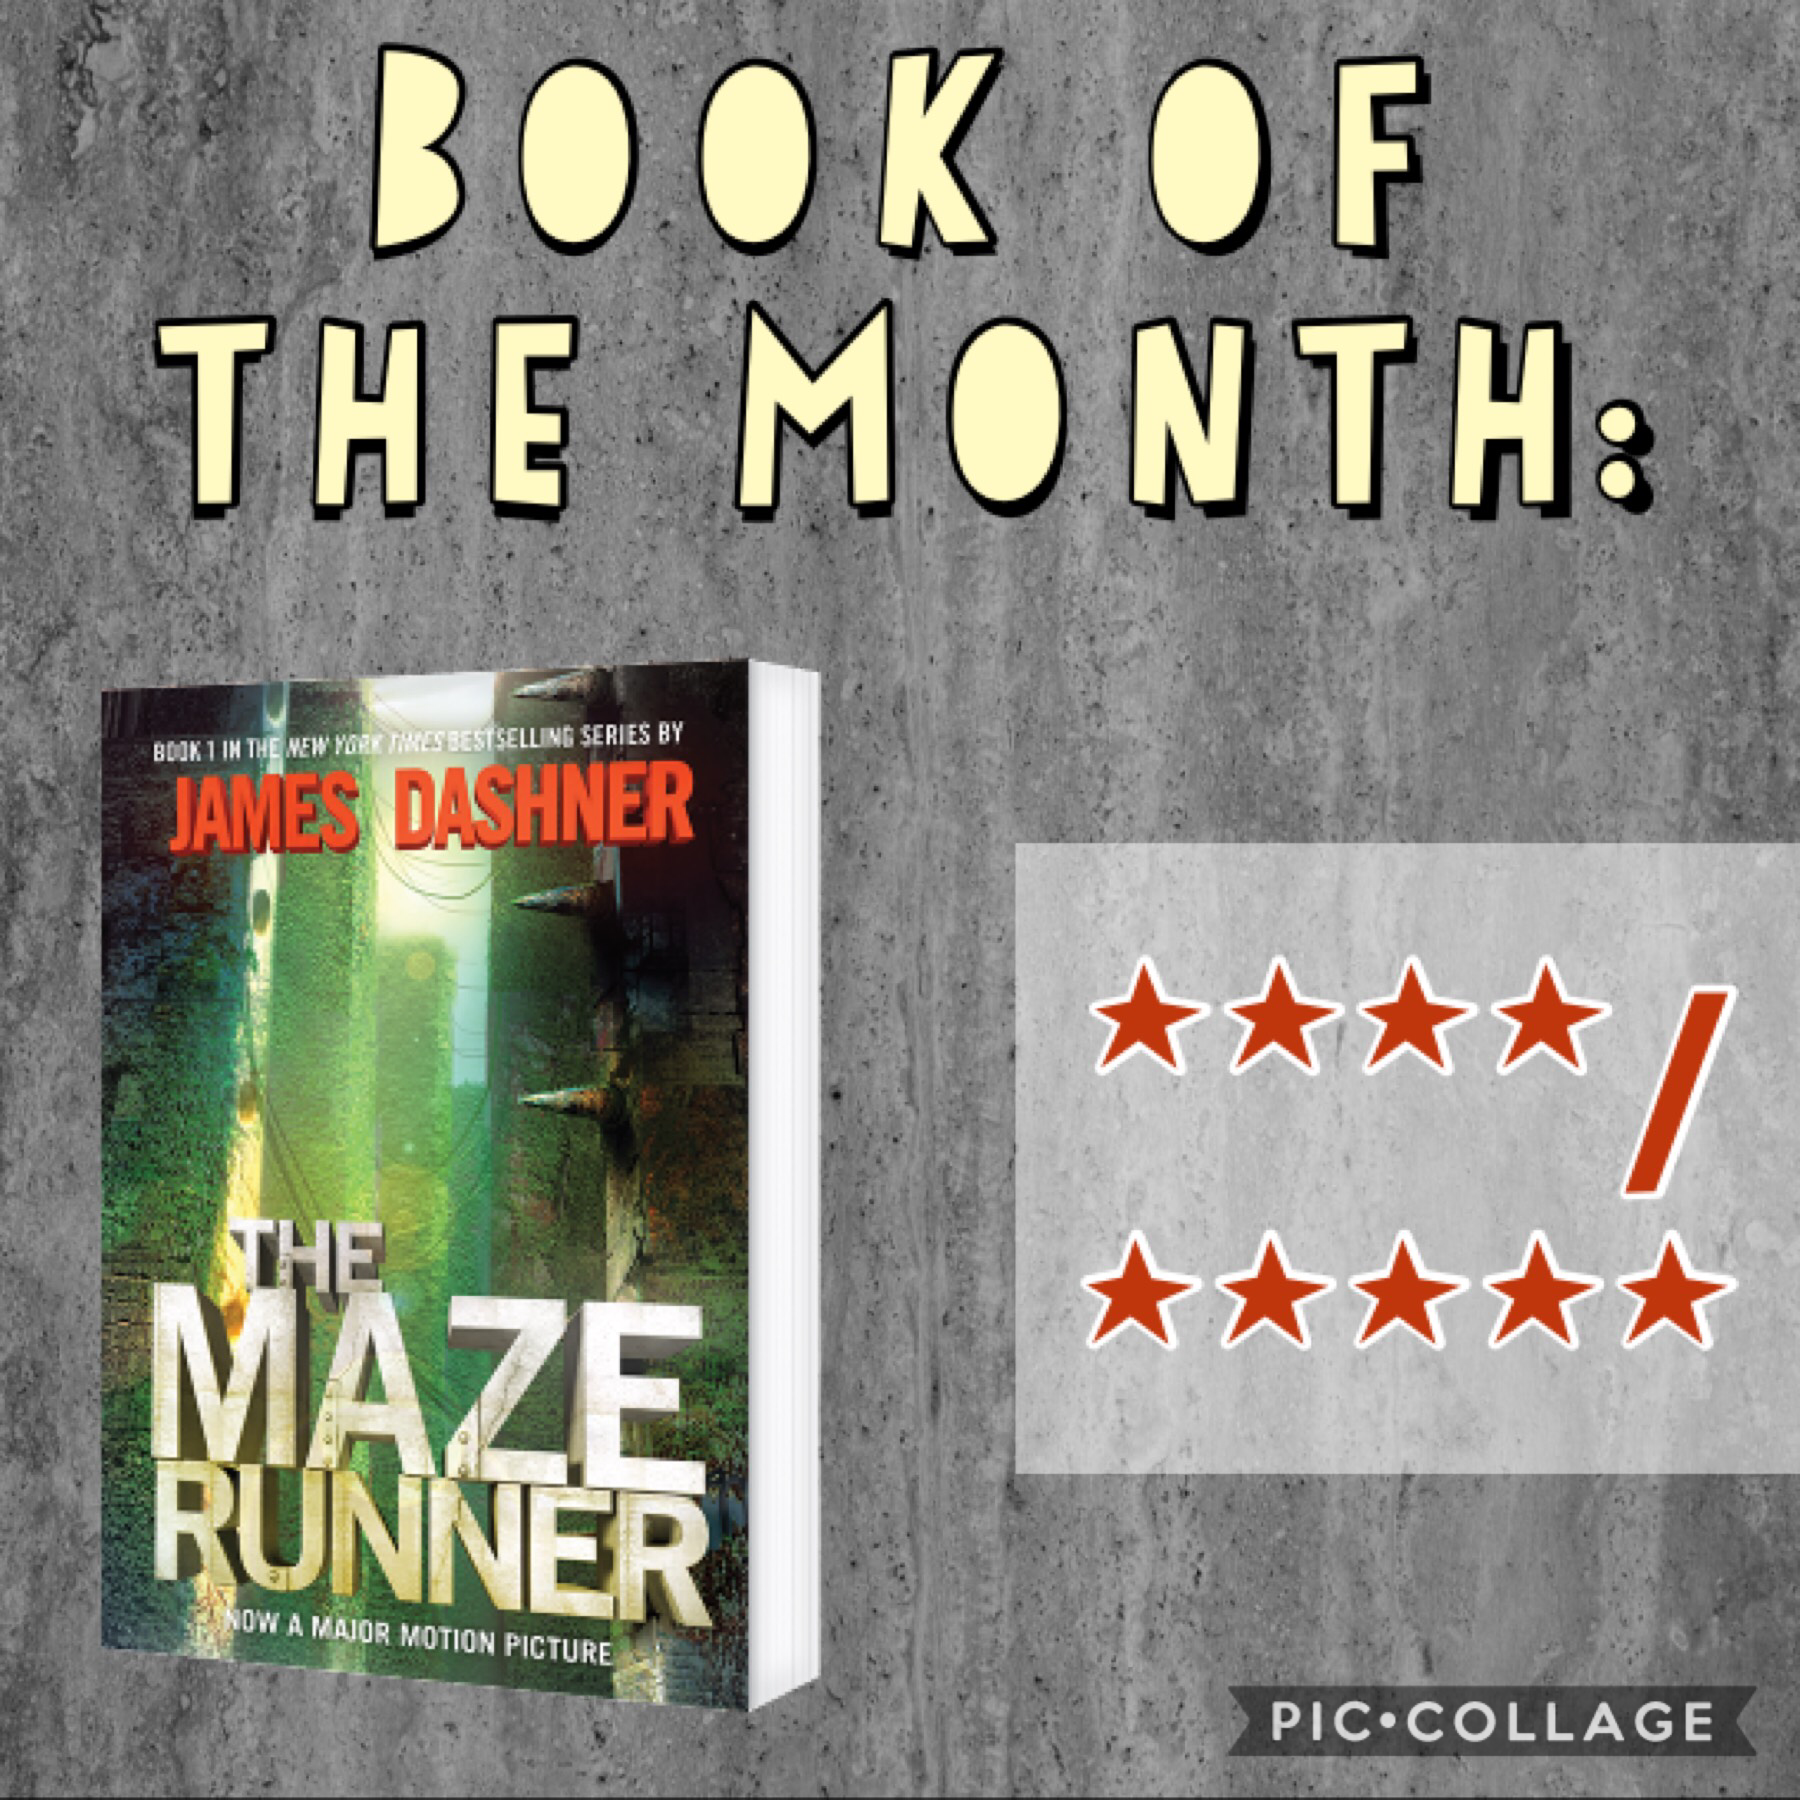 BOTM! 📚 I finally started this last week, it was in my b-day haul last year if anyone remembers. 😅 🗓 I'm half done with it, so I posted this now. 🏃🏻‍♂️🏃🏼‍♂️🏃🏽‍♀️ It's pretty good. 👌🏻 I literally haven't read since last year. 😵 Also, it was snowing... 🥶